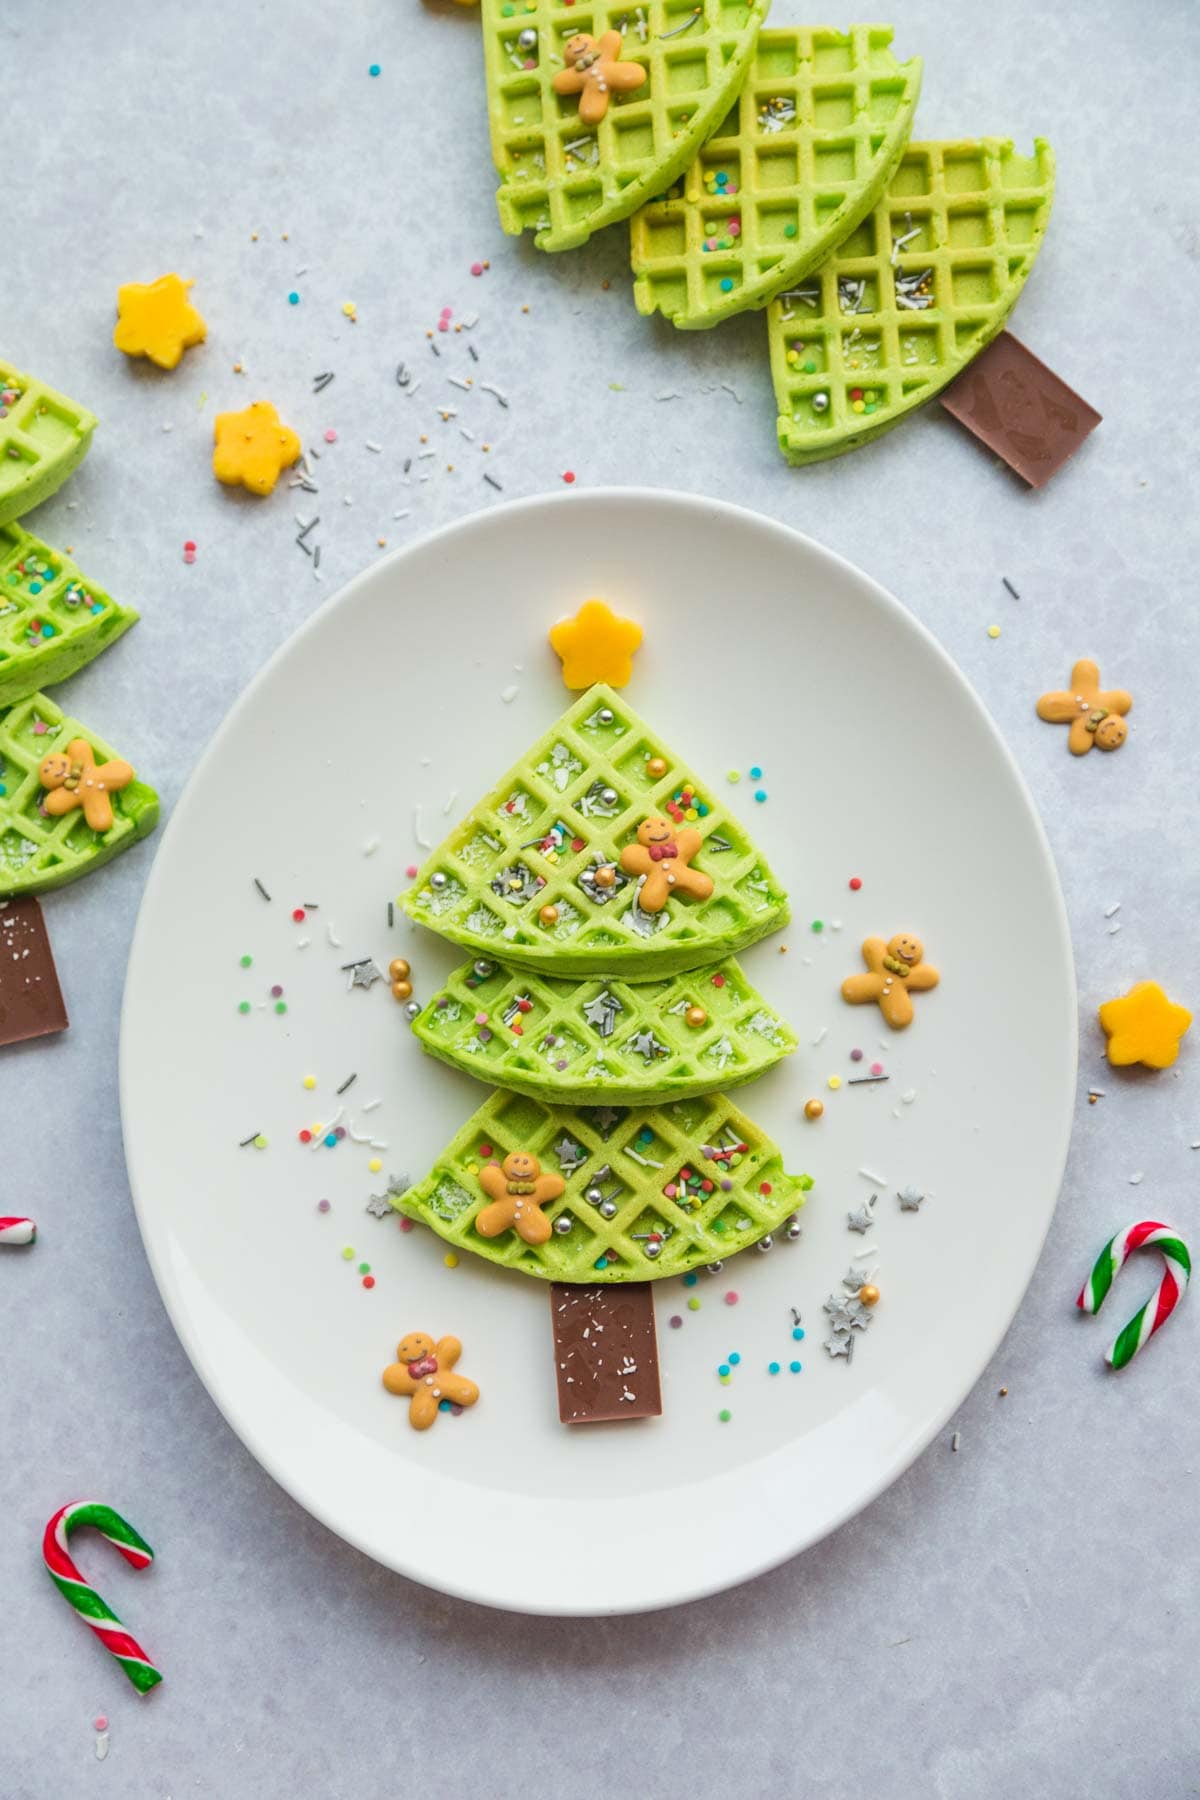 These are the cutest waffles that you will ever make! Green Christmas tree waffles make a fun Christmas breakfast that your kids are gonna love. So quick and easy to make, and the kids can decorate their own waffle Christmas trees.